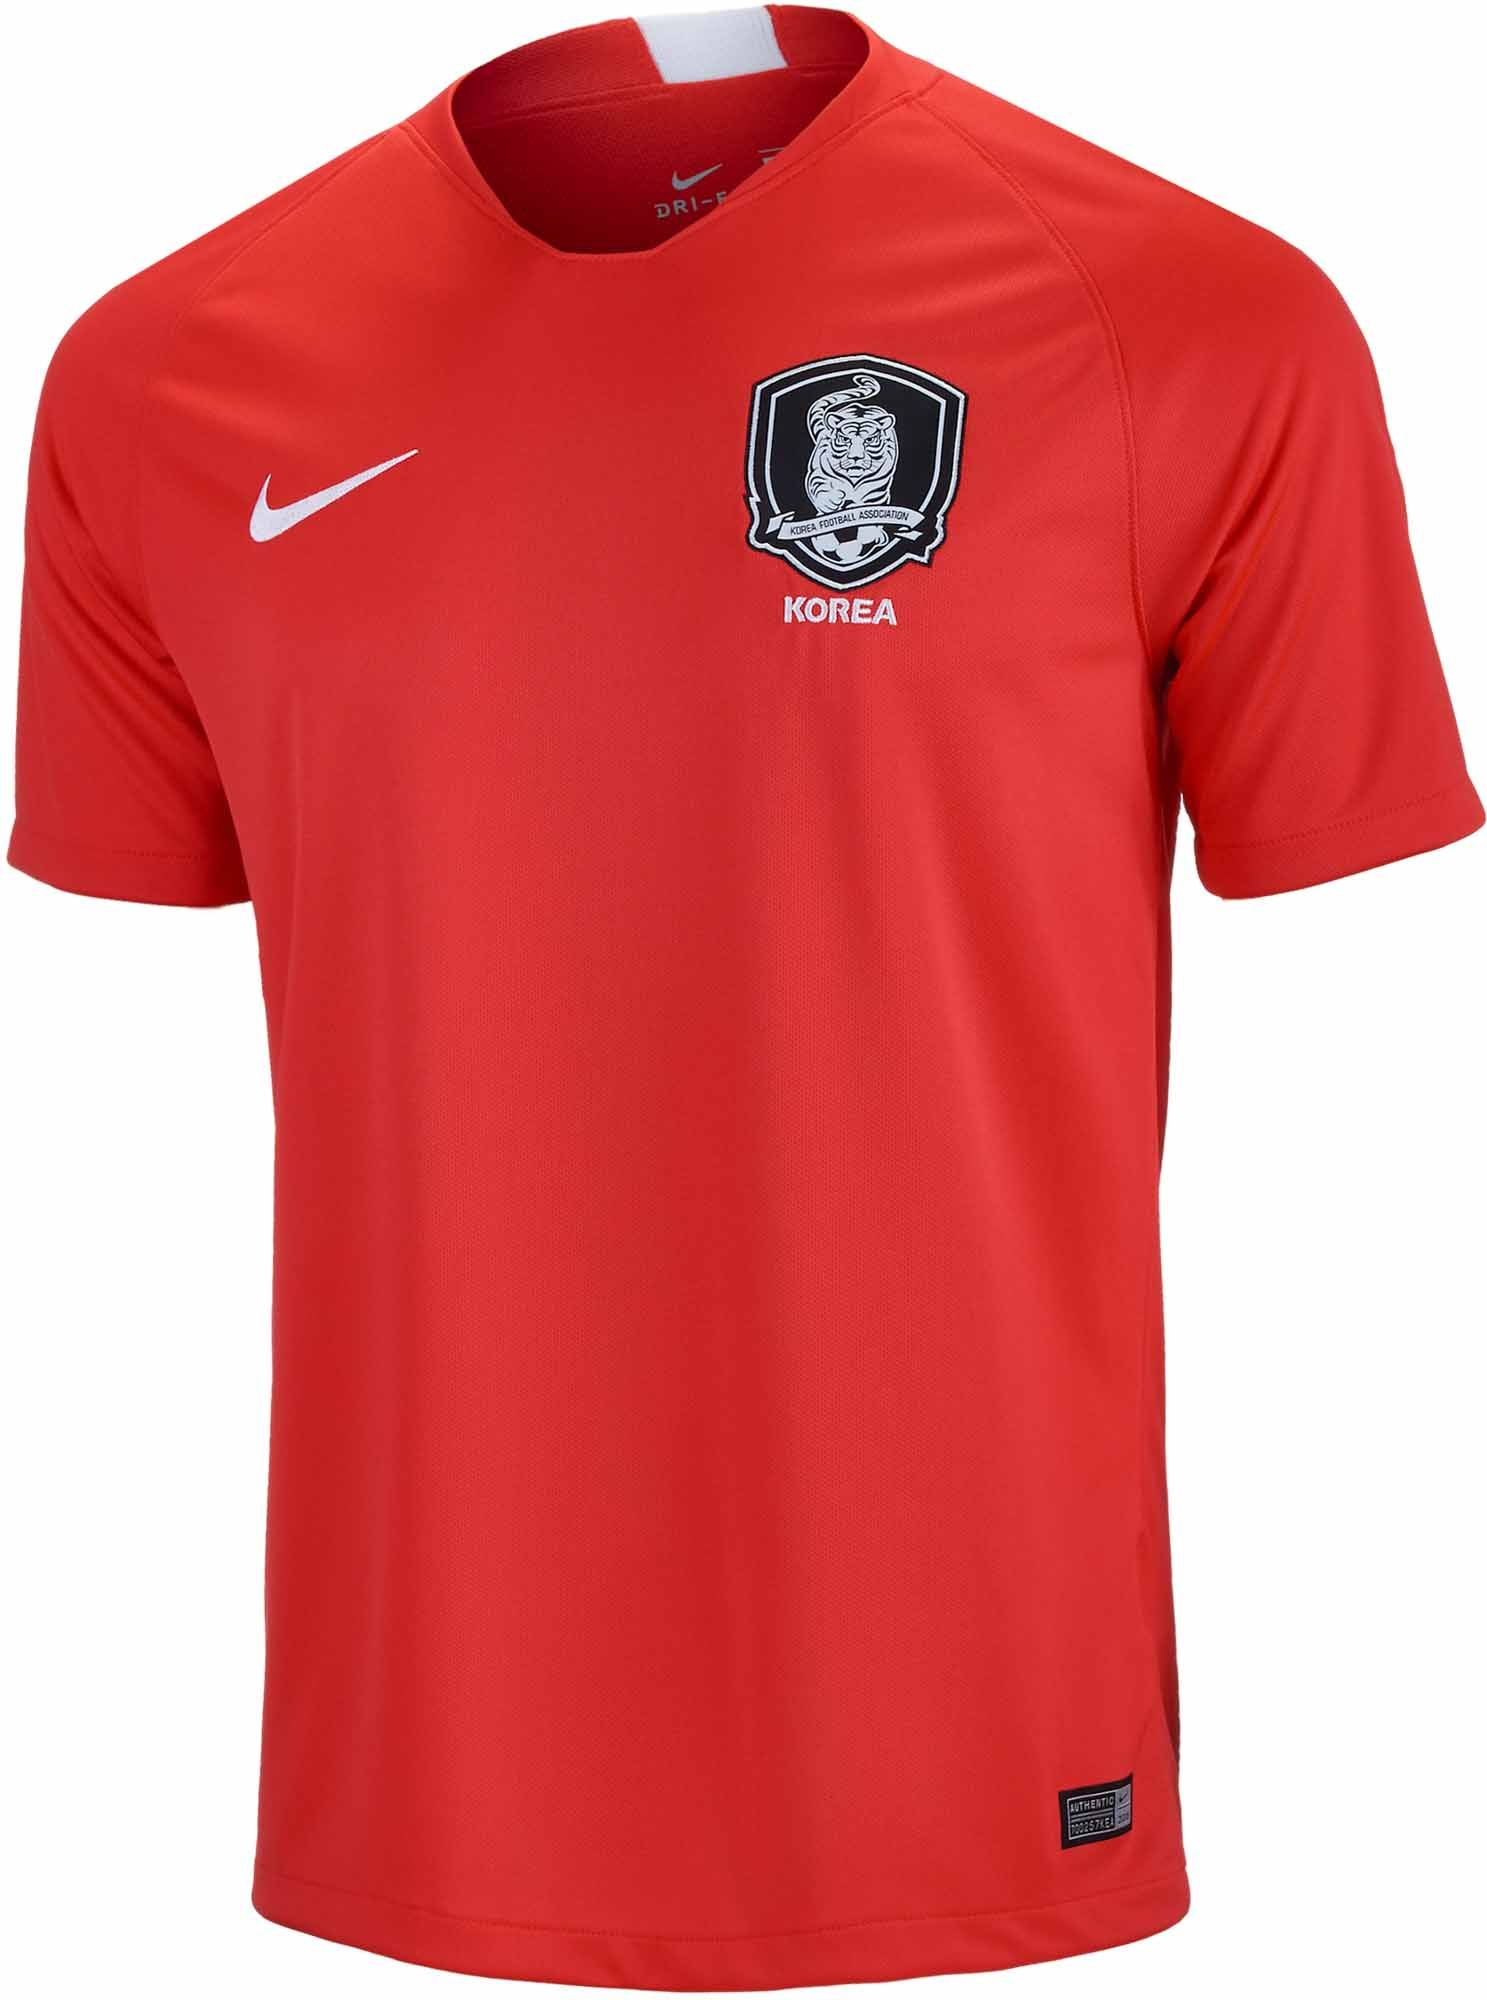 4dc0152d6aa 2018 19 Nike South Korea Home Jersey. Buy yours now from www.soccerpro.com